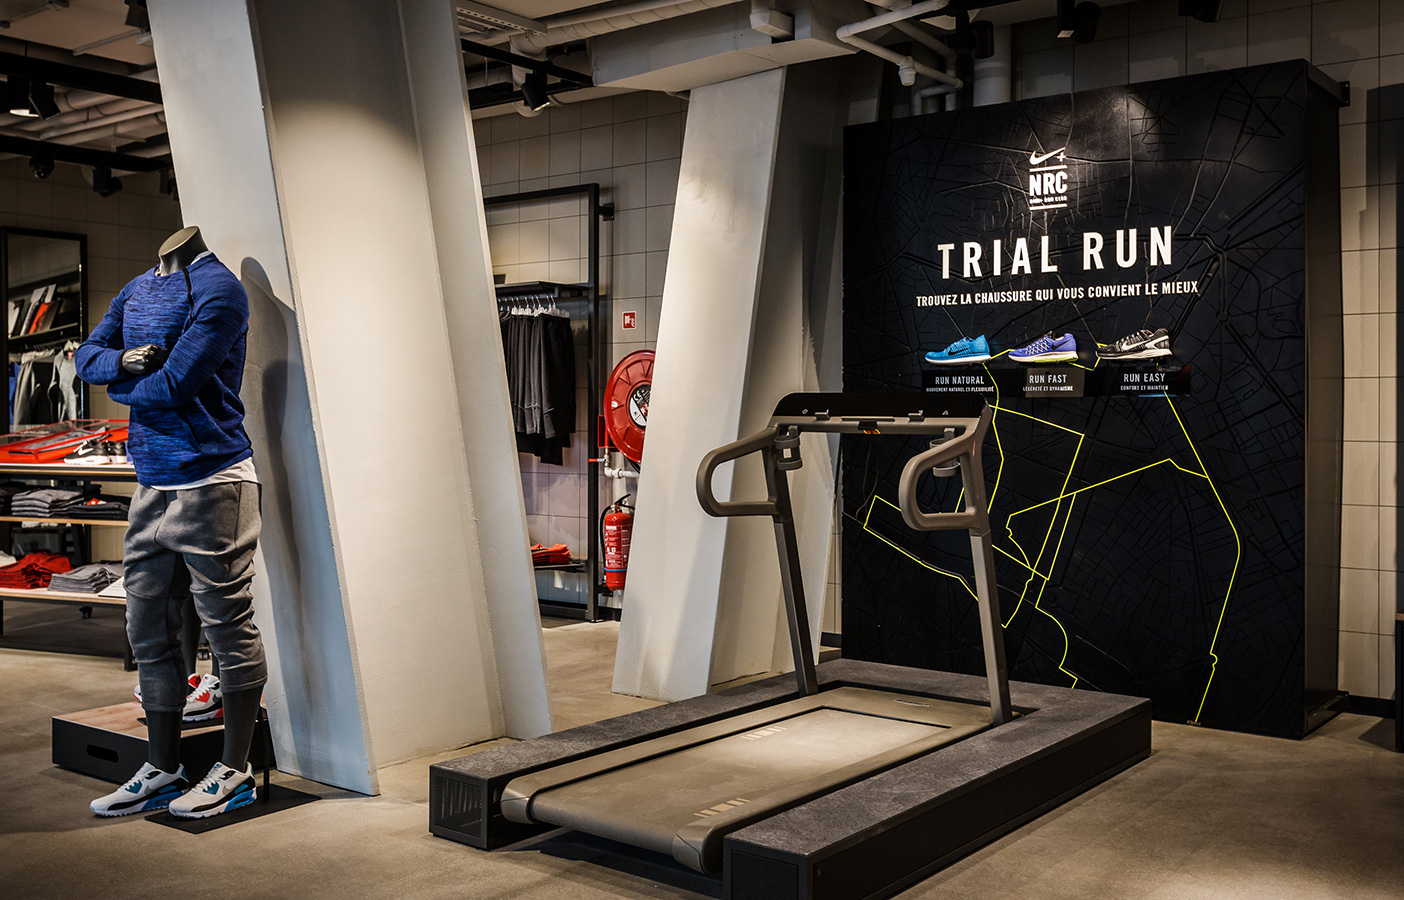 Aldworth James & Bond | Nike Store Les Halles - Trial Run map by AJ&B CNC team